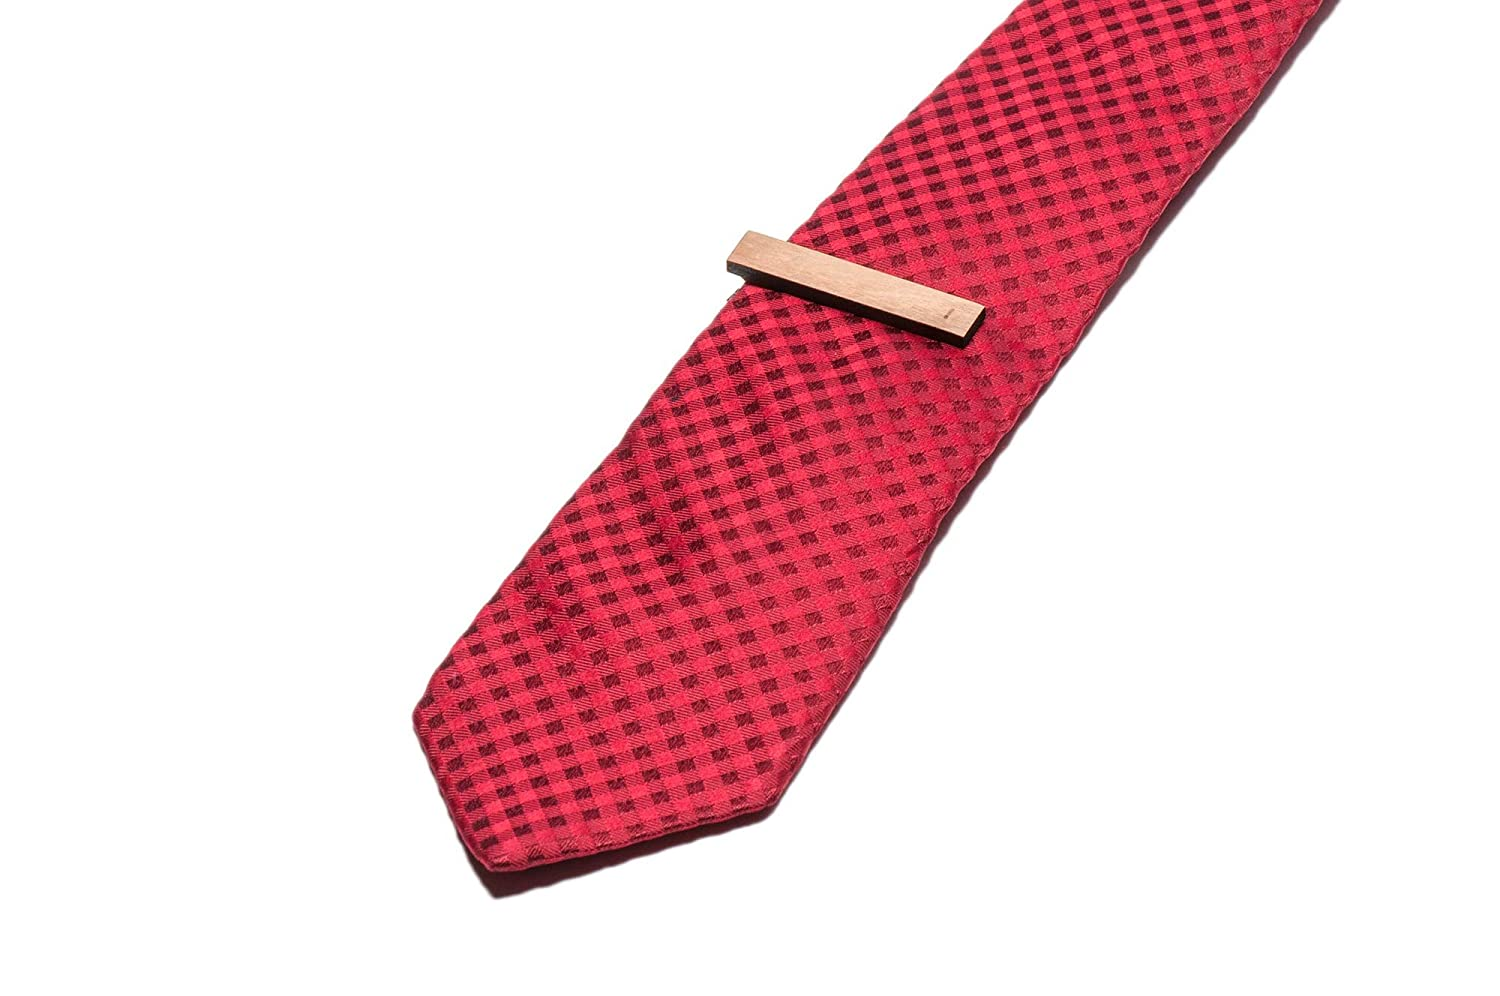 Wooden Accessories Company Wooden Tie Clips with Laser Engraved Fluorescent Lamp Design Cherry Wood Tie Bar Engraved in The USA